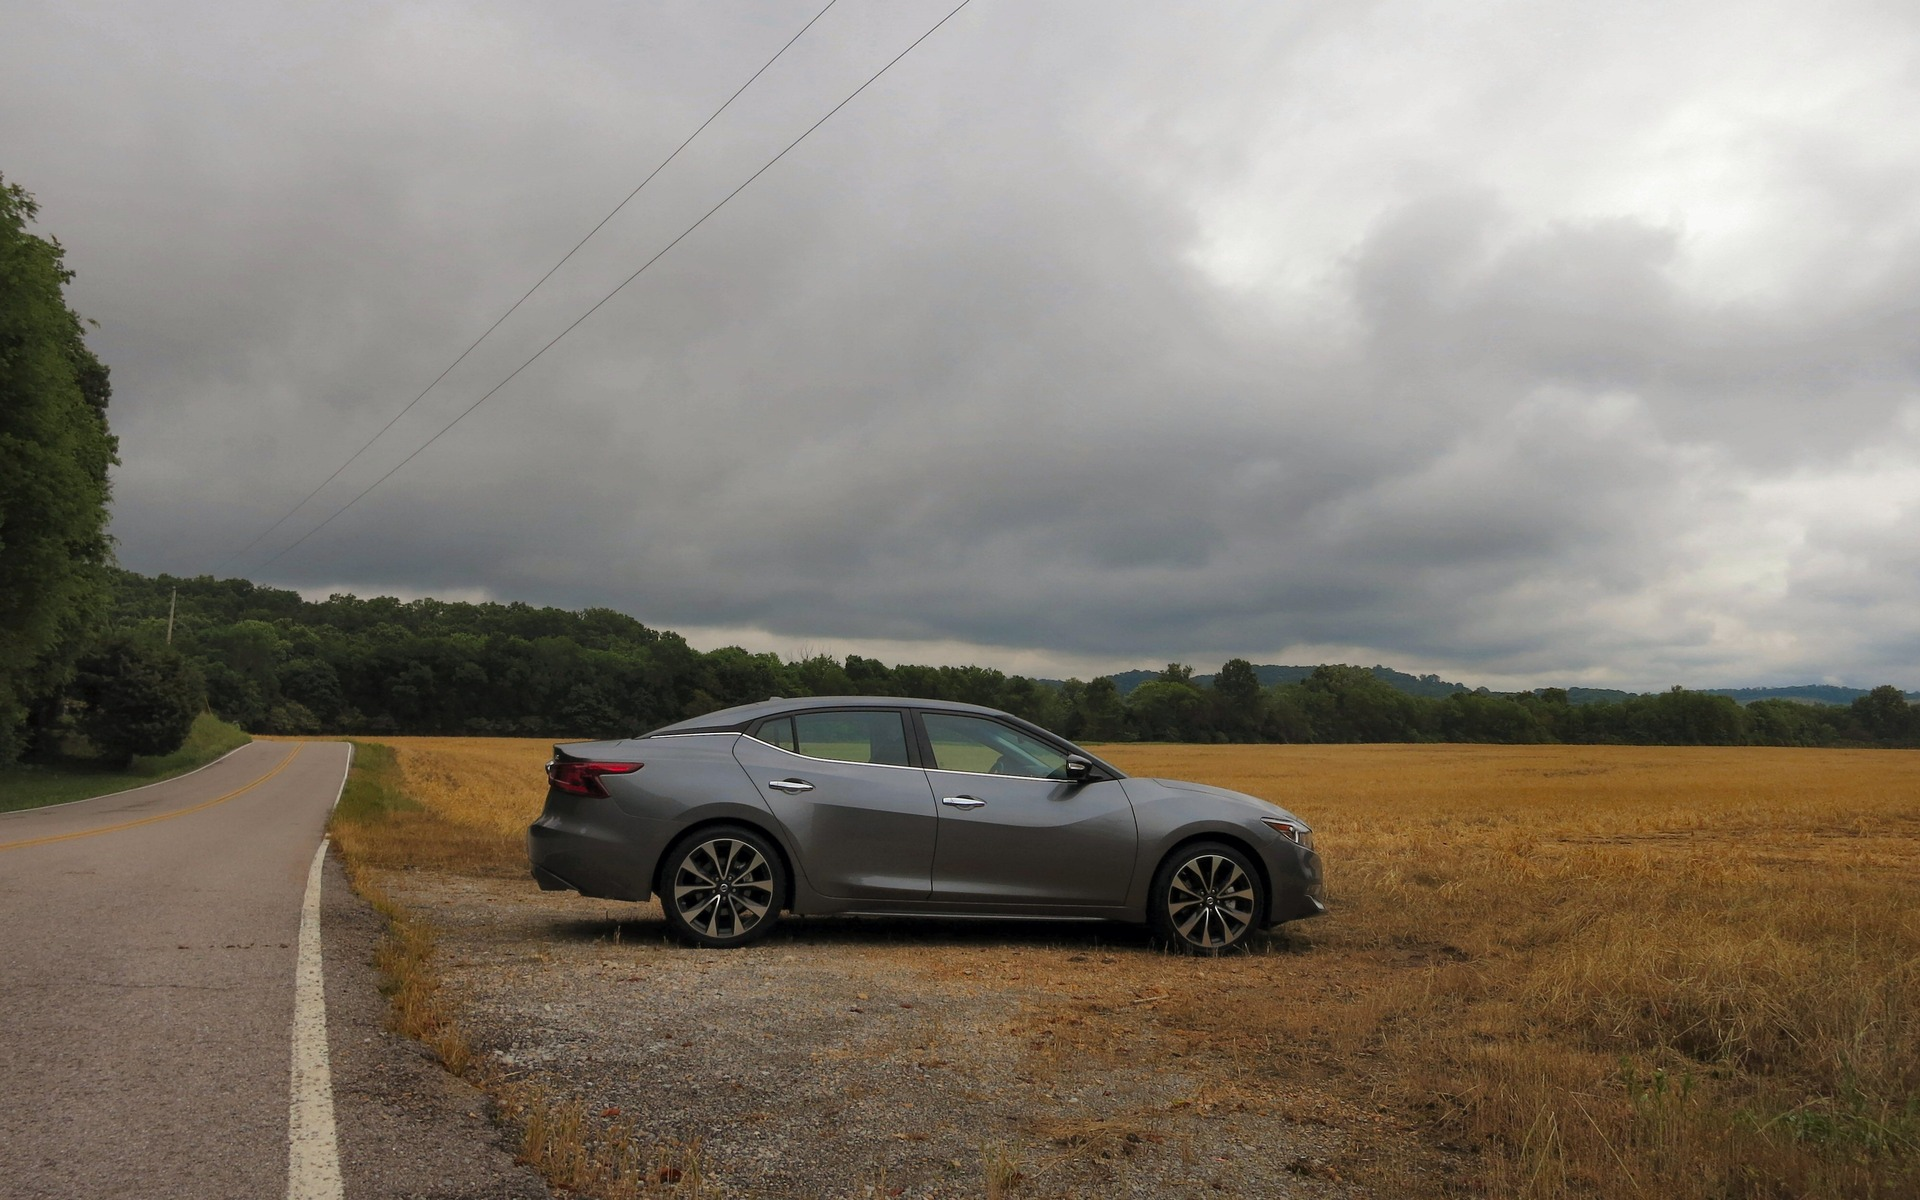 The new car is comfortable, stylish, and exceedingly well-priced.